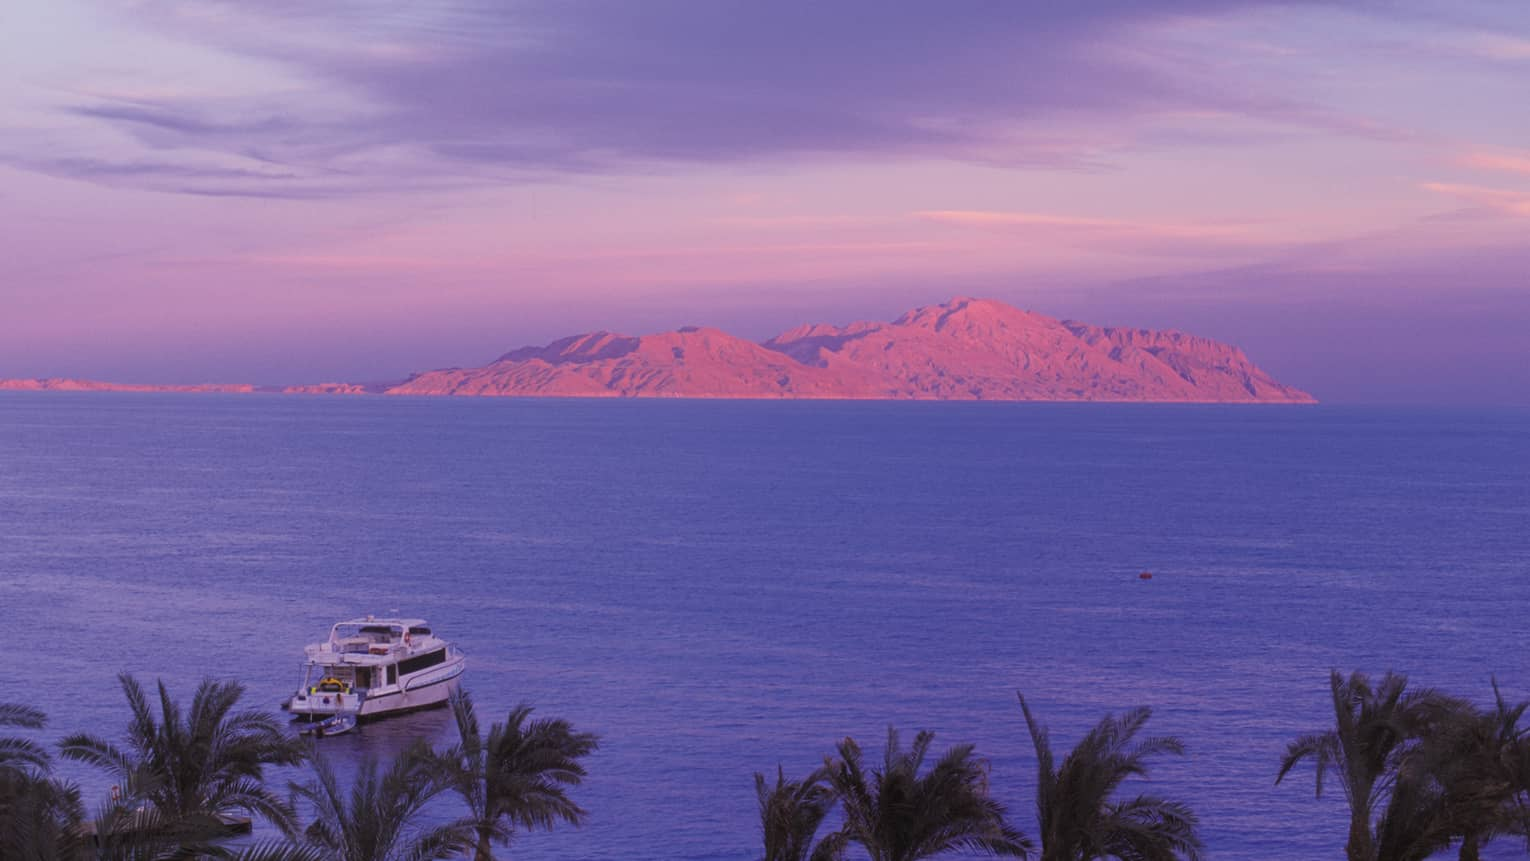 Looking down at palm trees, white yacht sailing on the Red Sea, pink mountains in distance